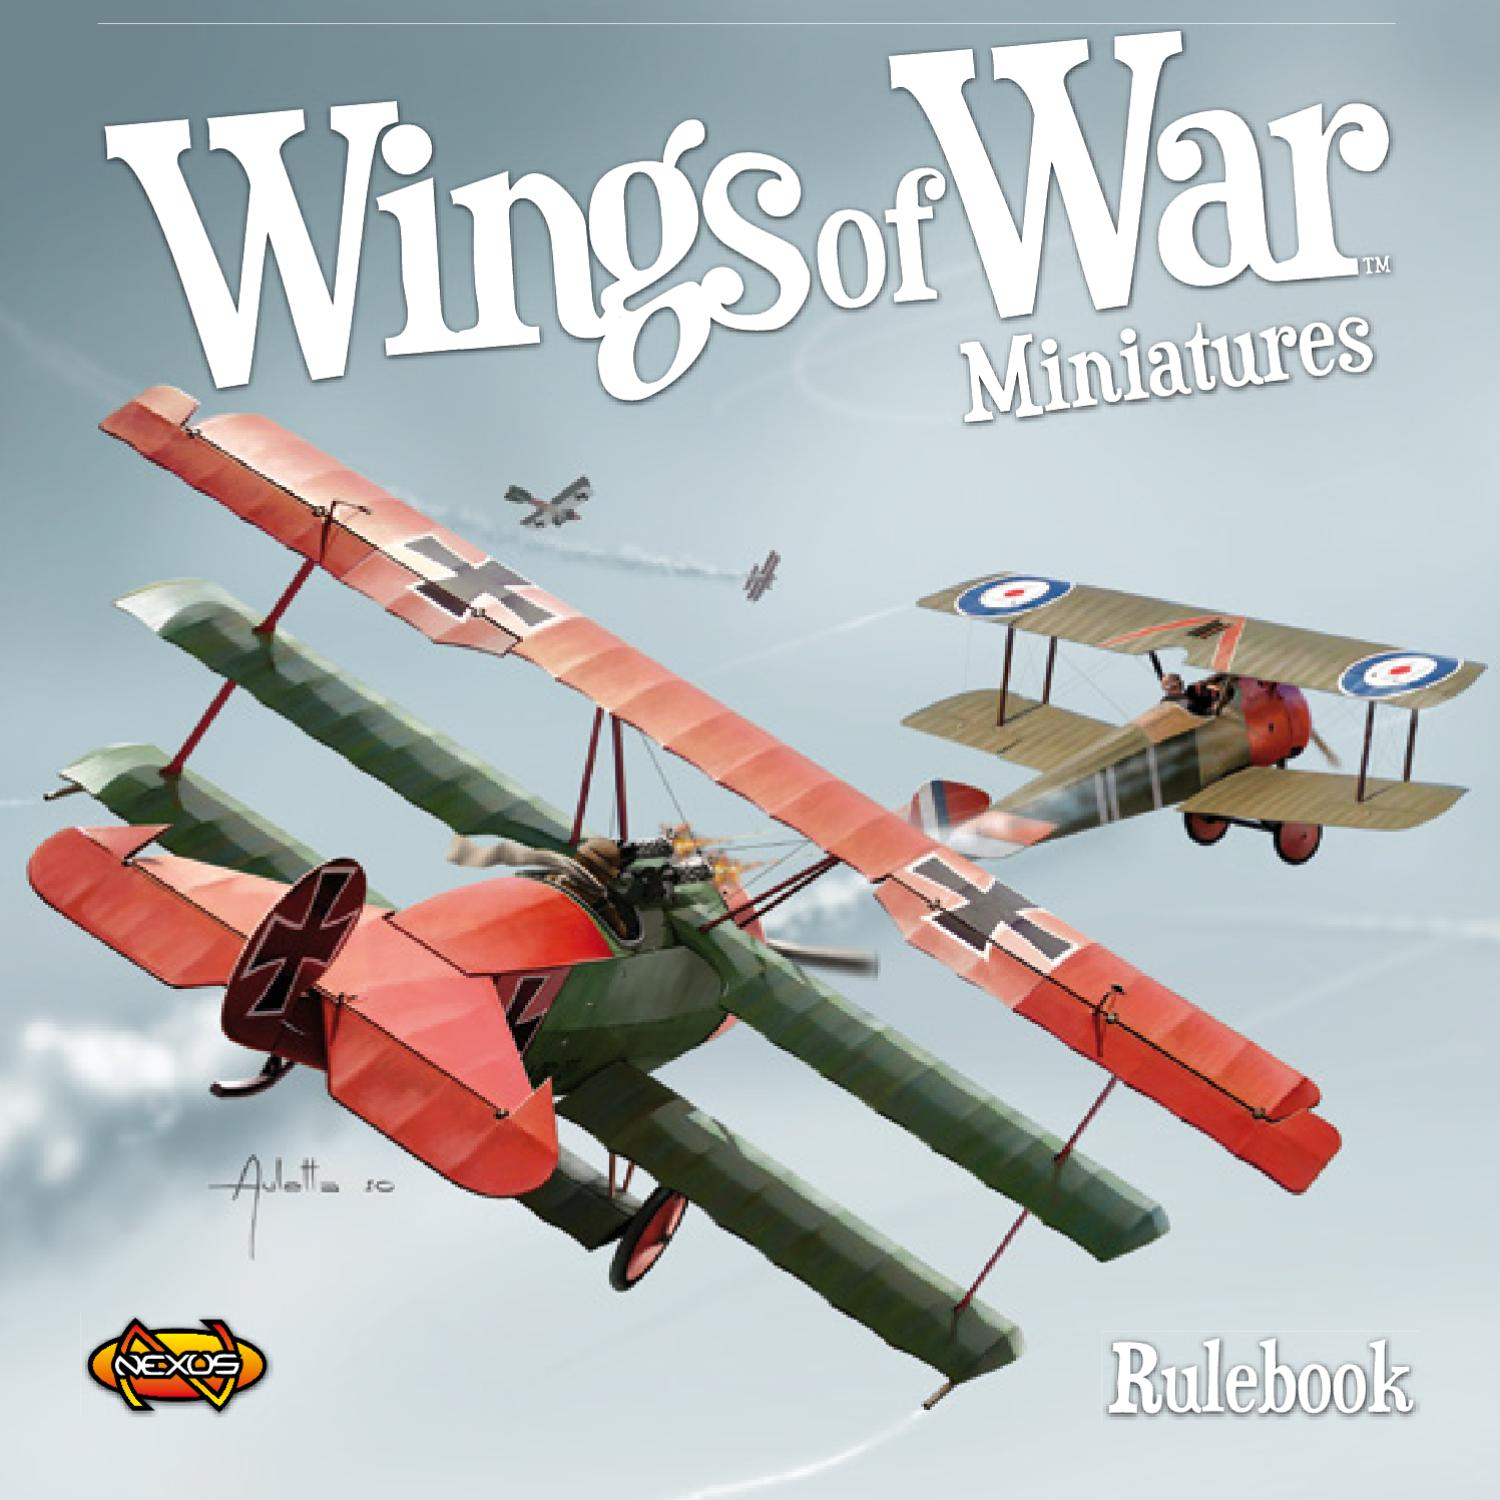 English Ng Sala Set Wings Of War Ww1 Miniatures Revised Deluxe Set English